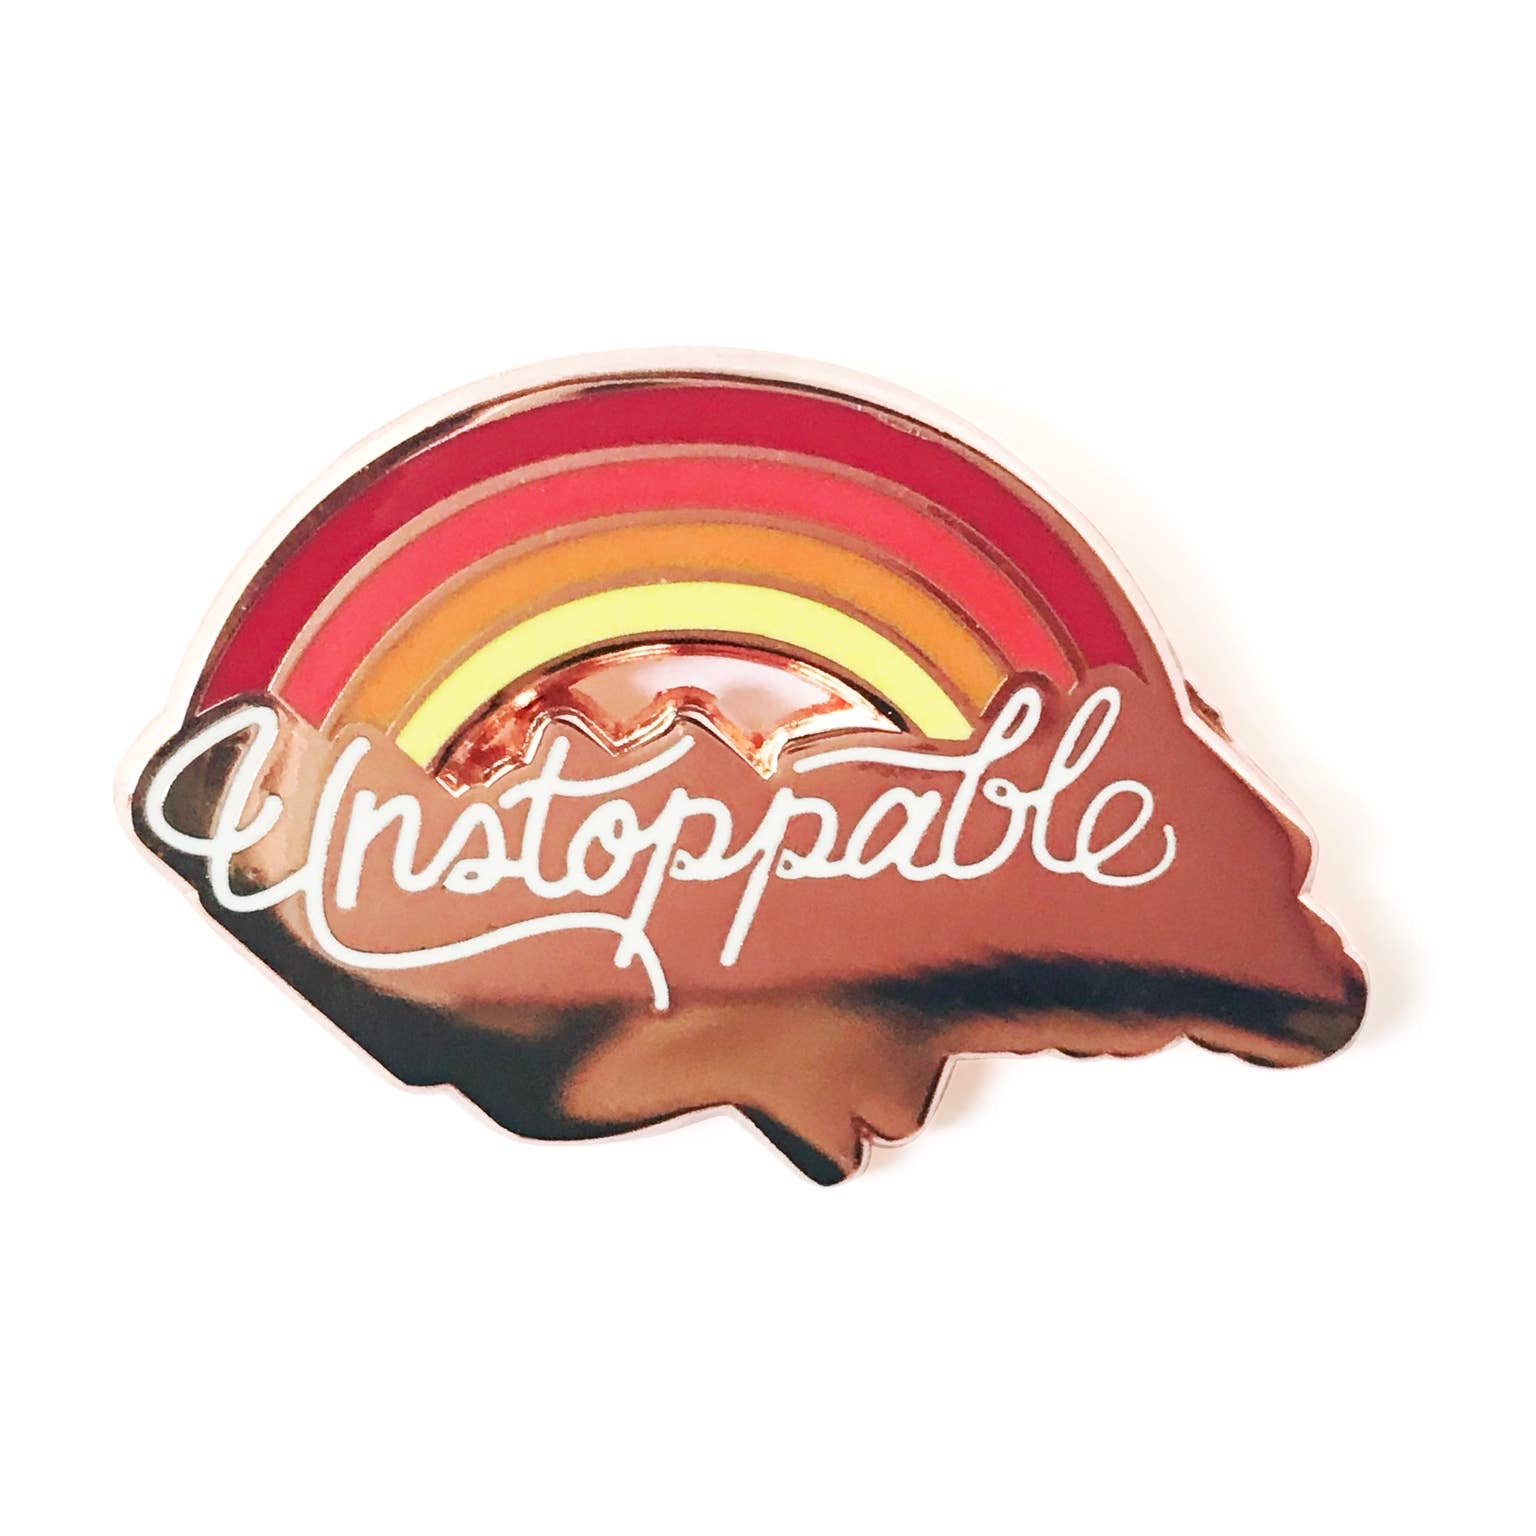 Unstoppable Pin